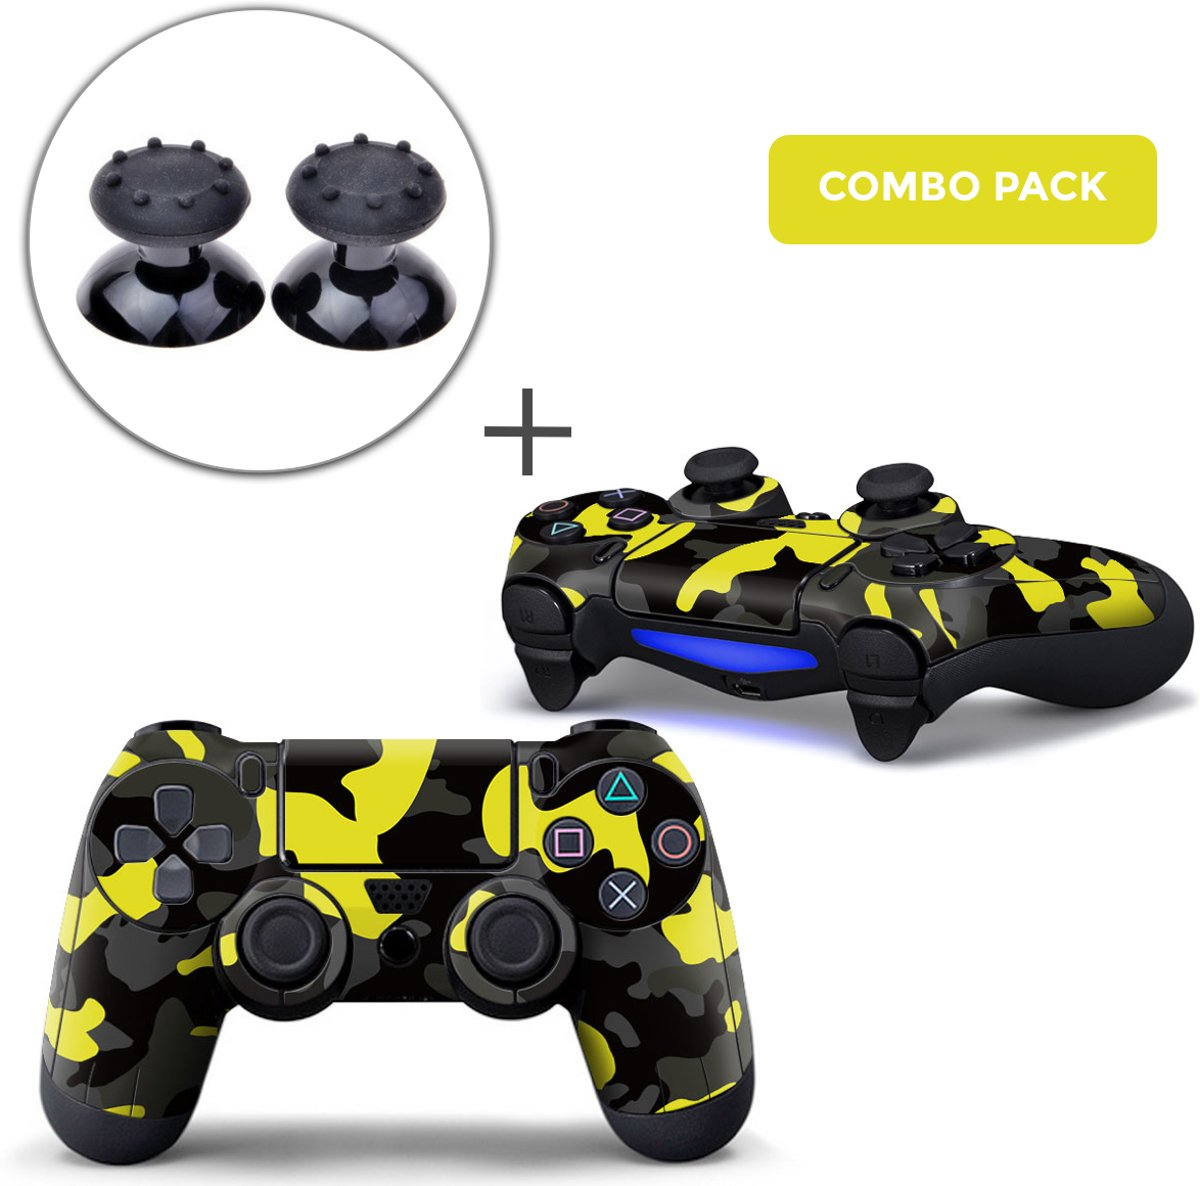 Army Camo / Geel Zwart Combo Pack - PS4 Controller Skins PlayStation Stickers + Thumb Grips